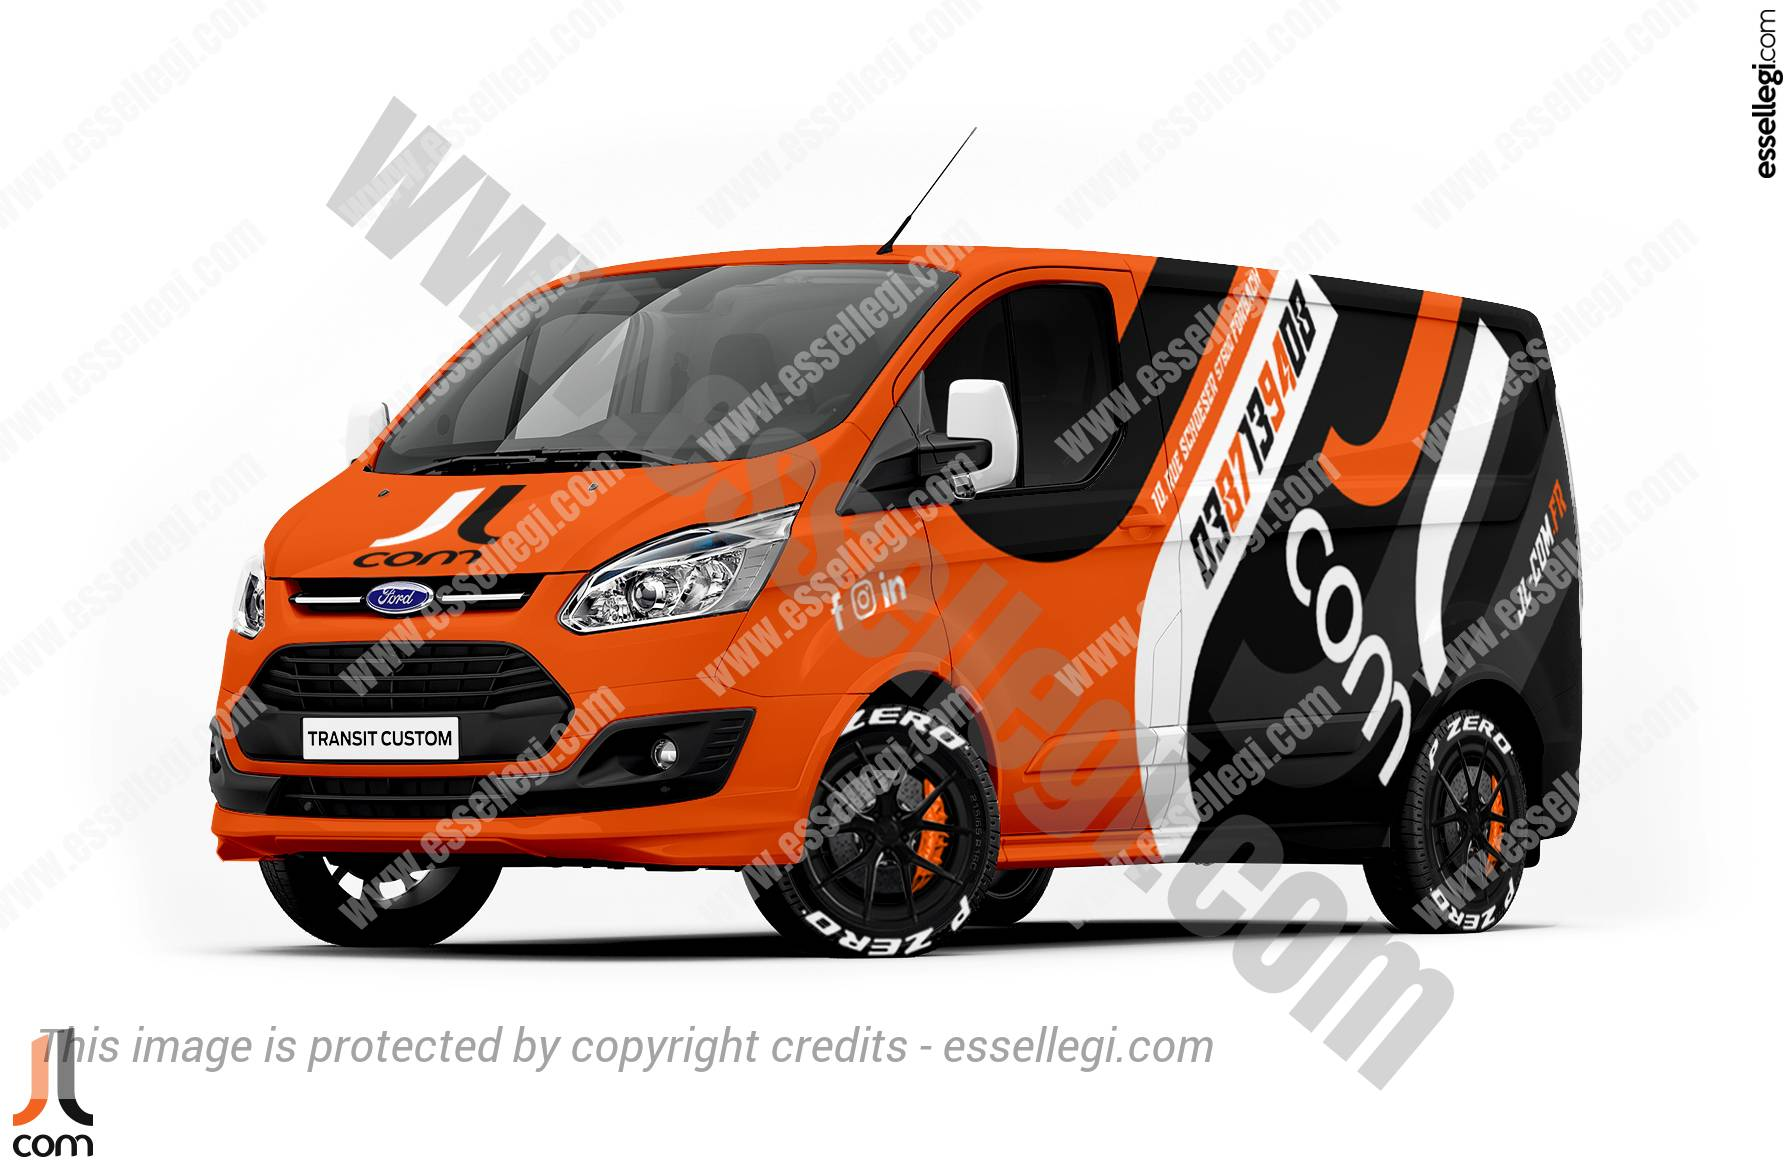 Ford Transit Custom Wrap Design. Ford Transit Custom | Van Wrap Design by Essellegi. Van Signs, Van Signage, Van Wrapping, Van Signwriting, Van Wrap Designer, Signs for Van, Van Logo, Van Graphic by Essellegi.